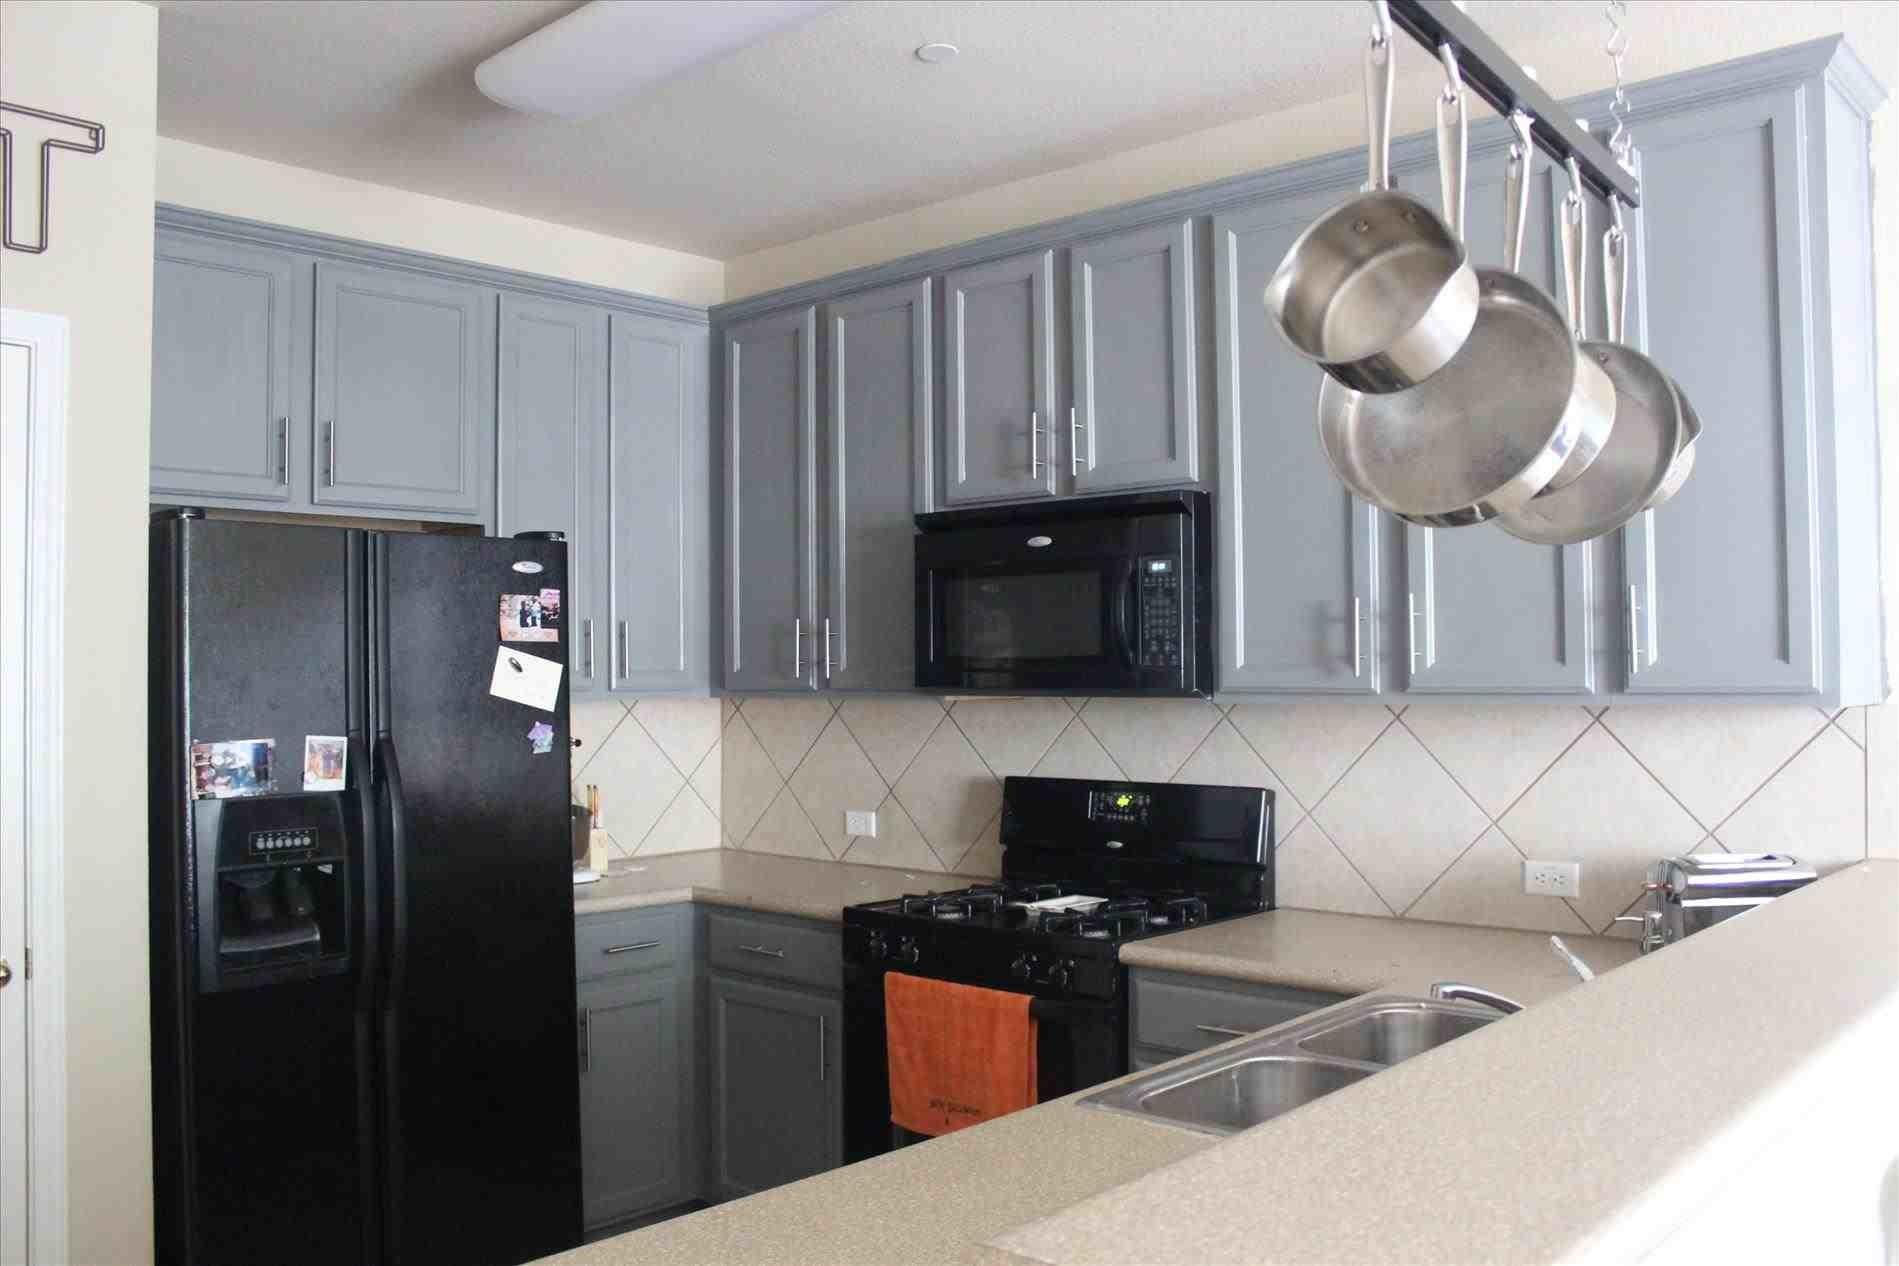 Appliance Paint Colors Best Ideas